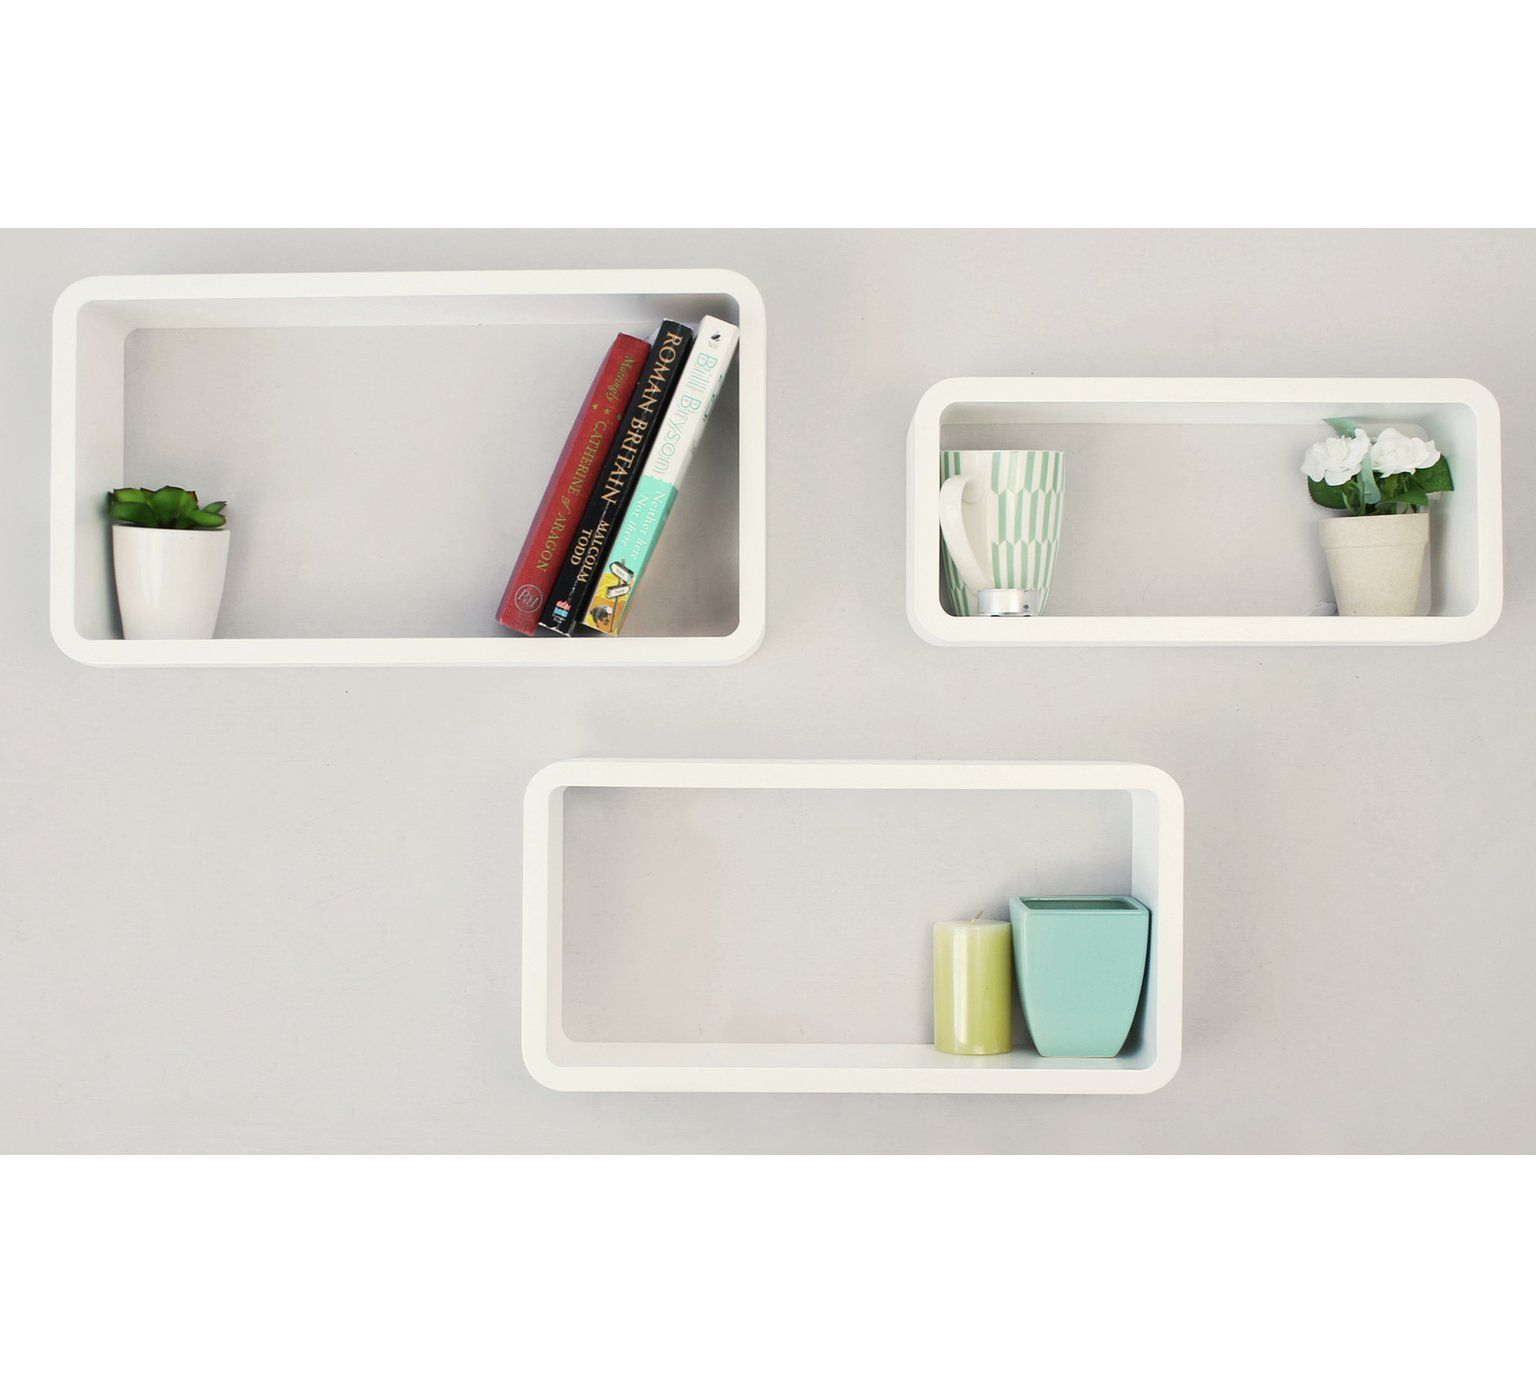 home set cubes white argos visit floating box shelves for wall mounted and living room furniture put without drilling decorative outdoor shelf brackets desk with hutch ikea over